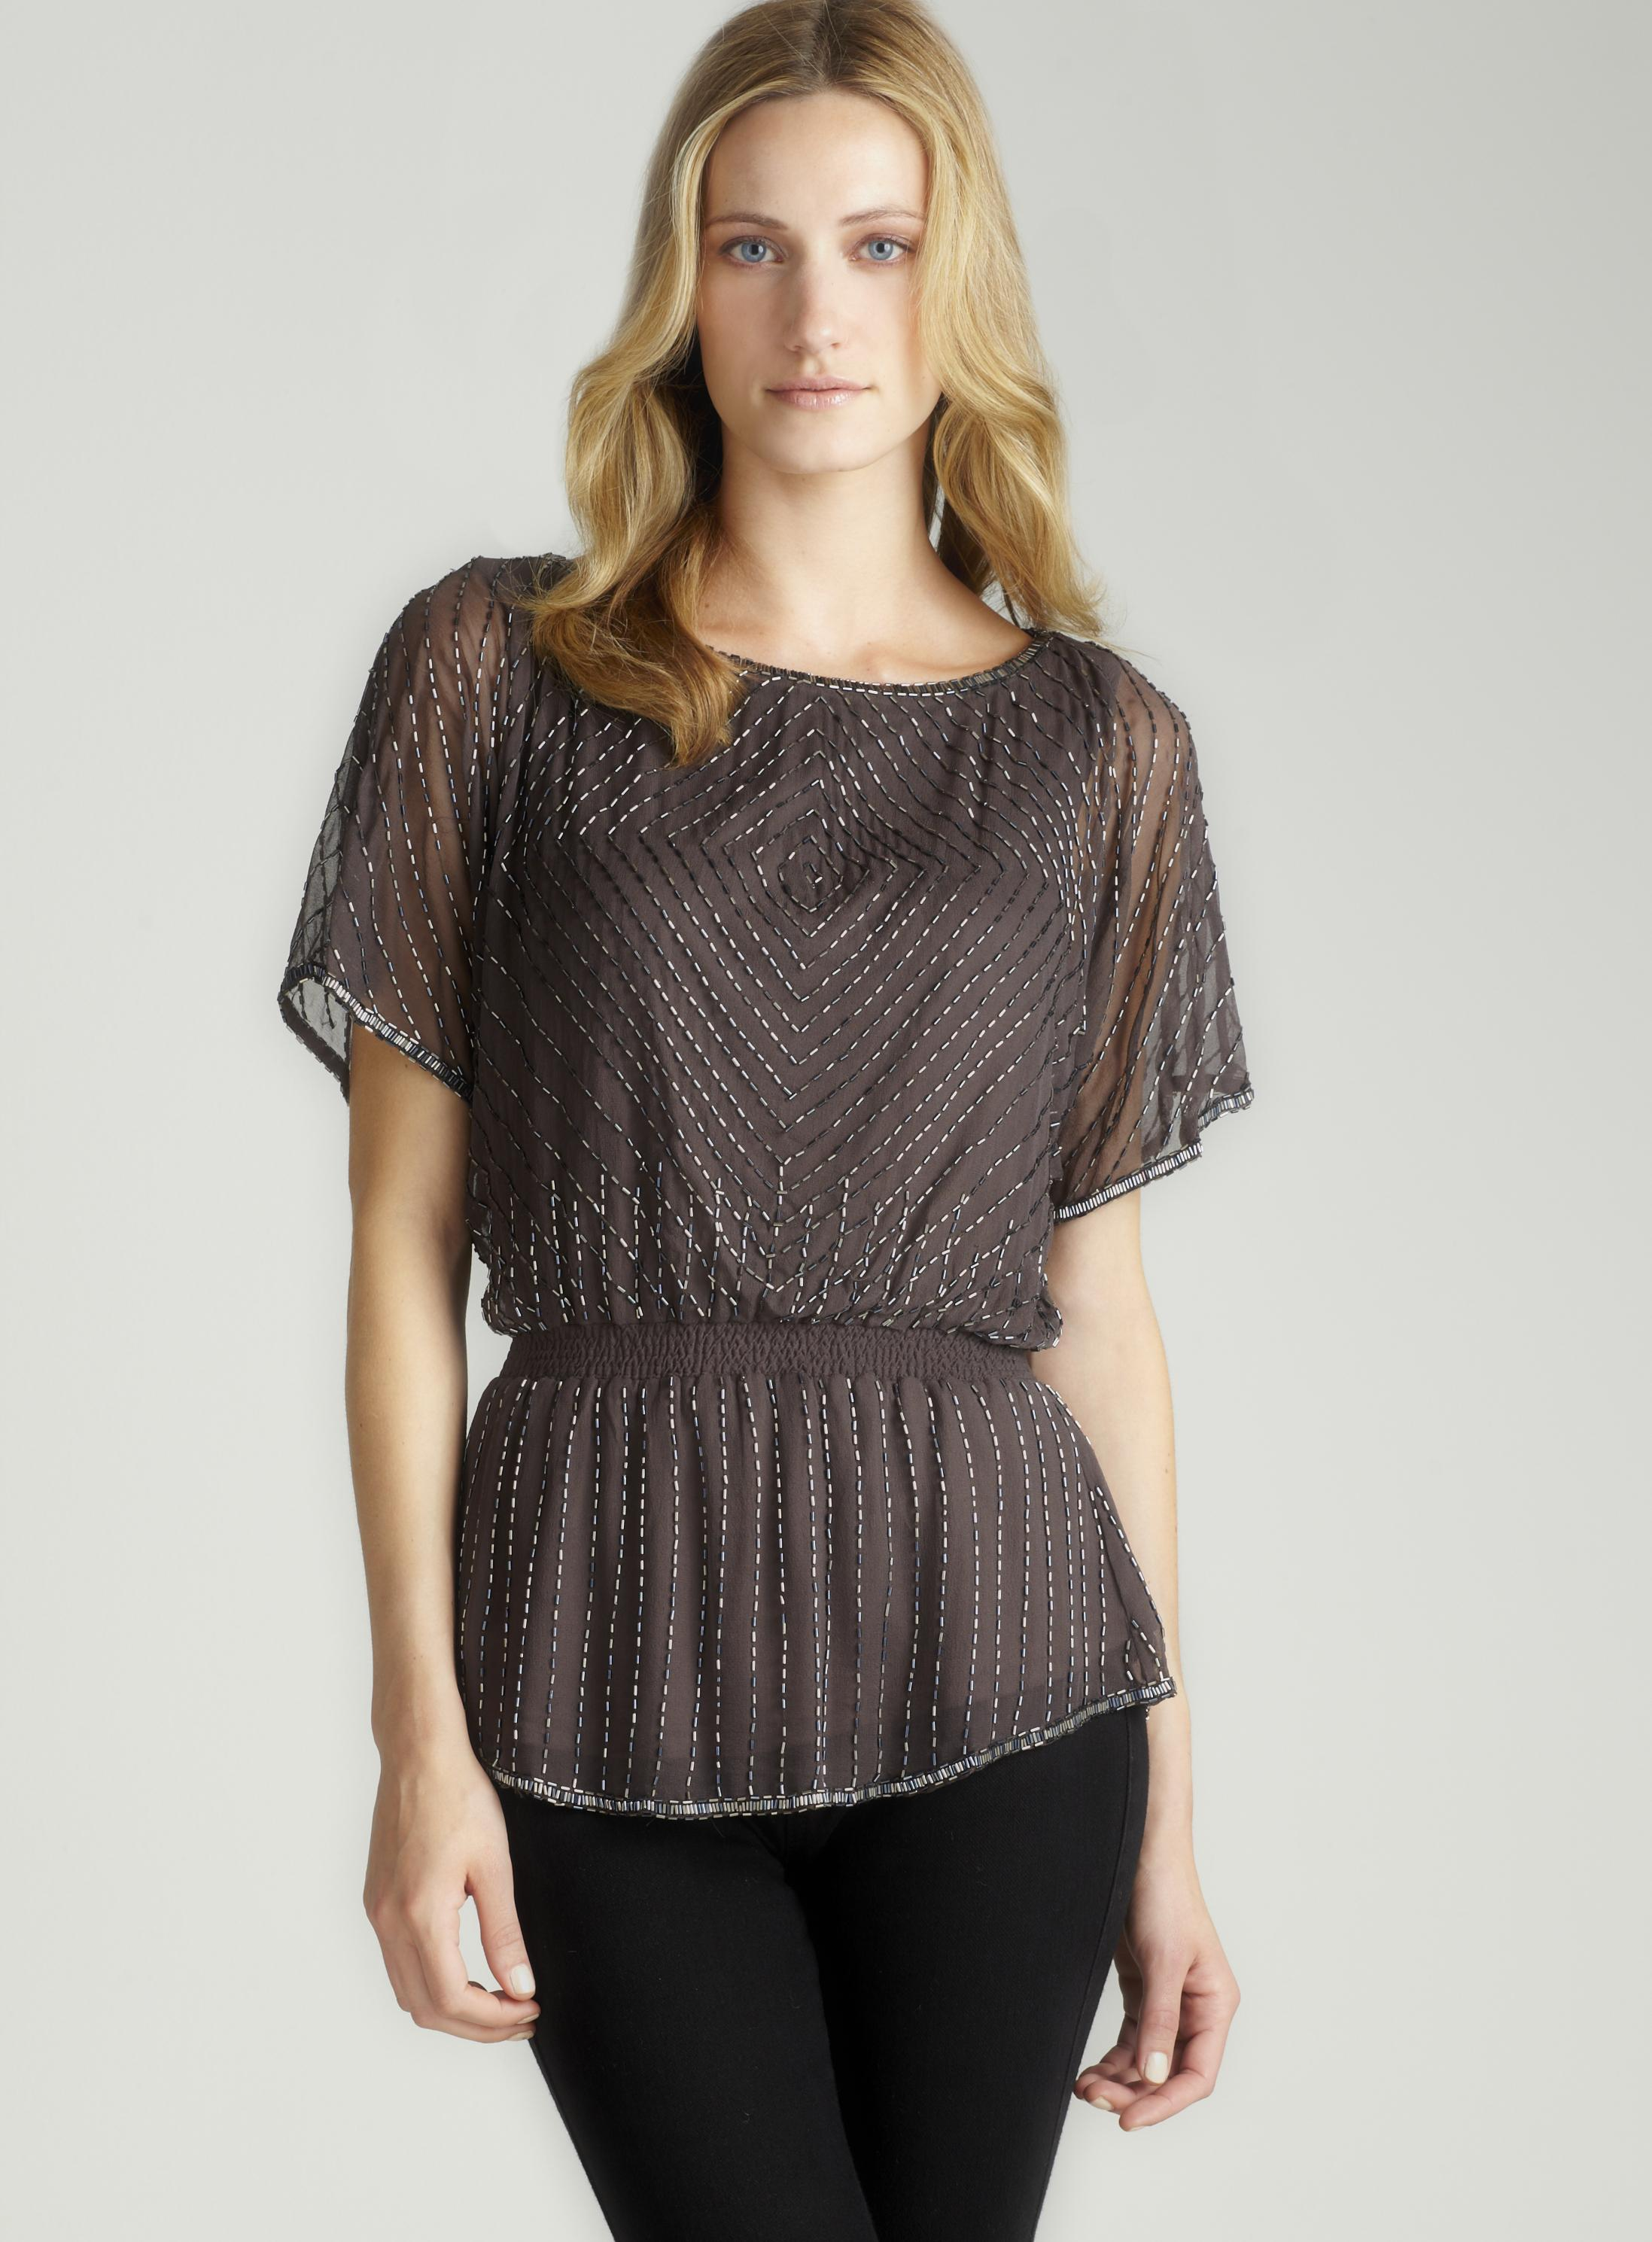 Adrianna Papell Beaded Blouson With Peplum Top